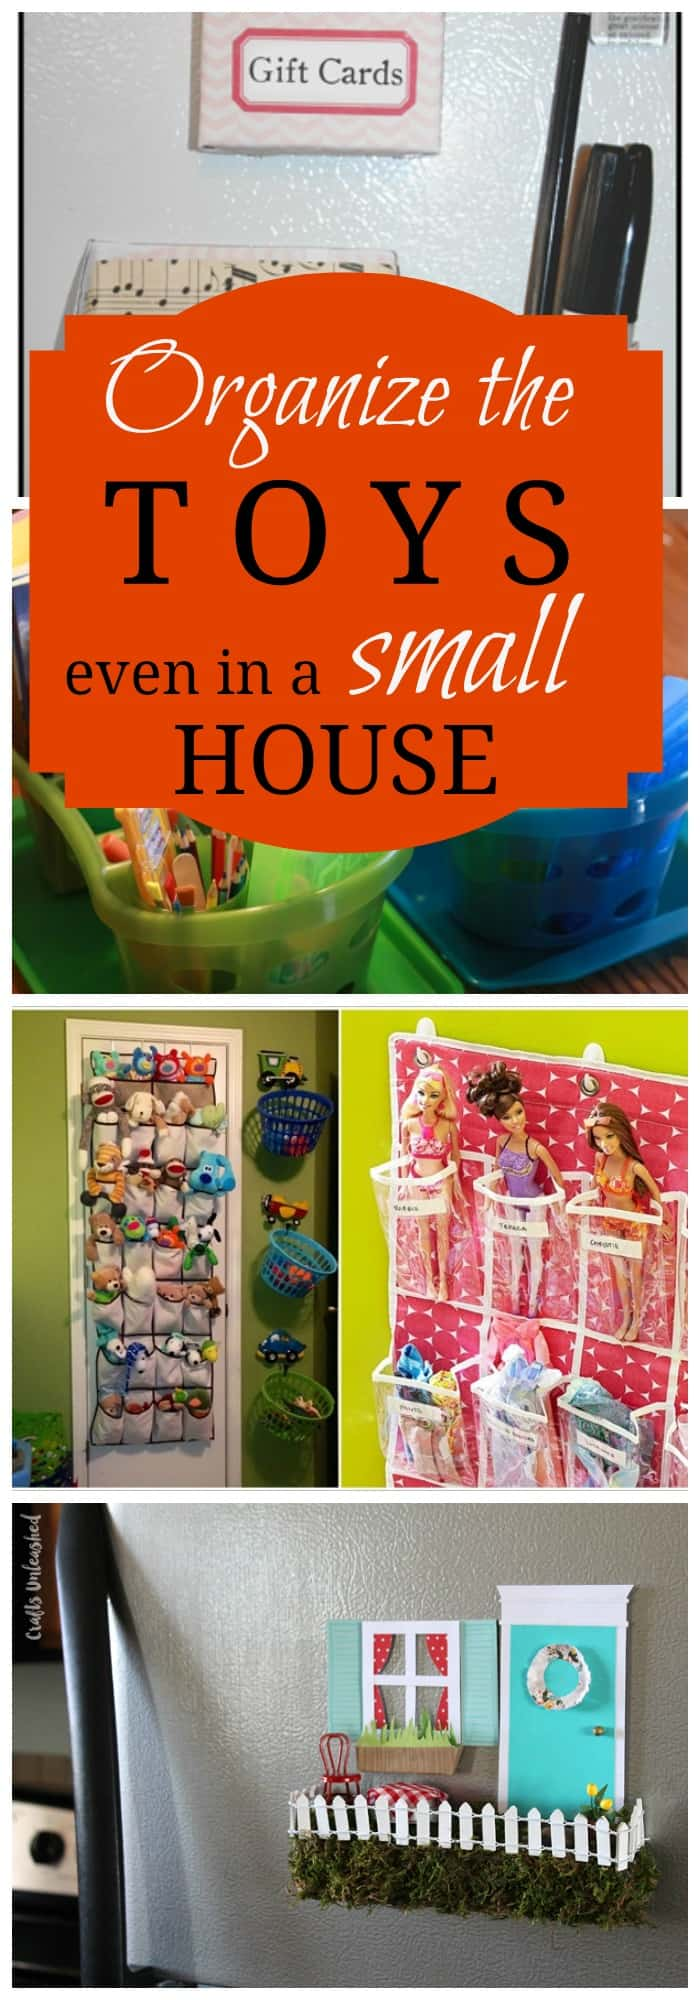 10 Ways to Store Toys in Small Living Spaces - The Organized Mom